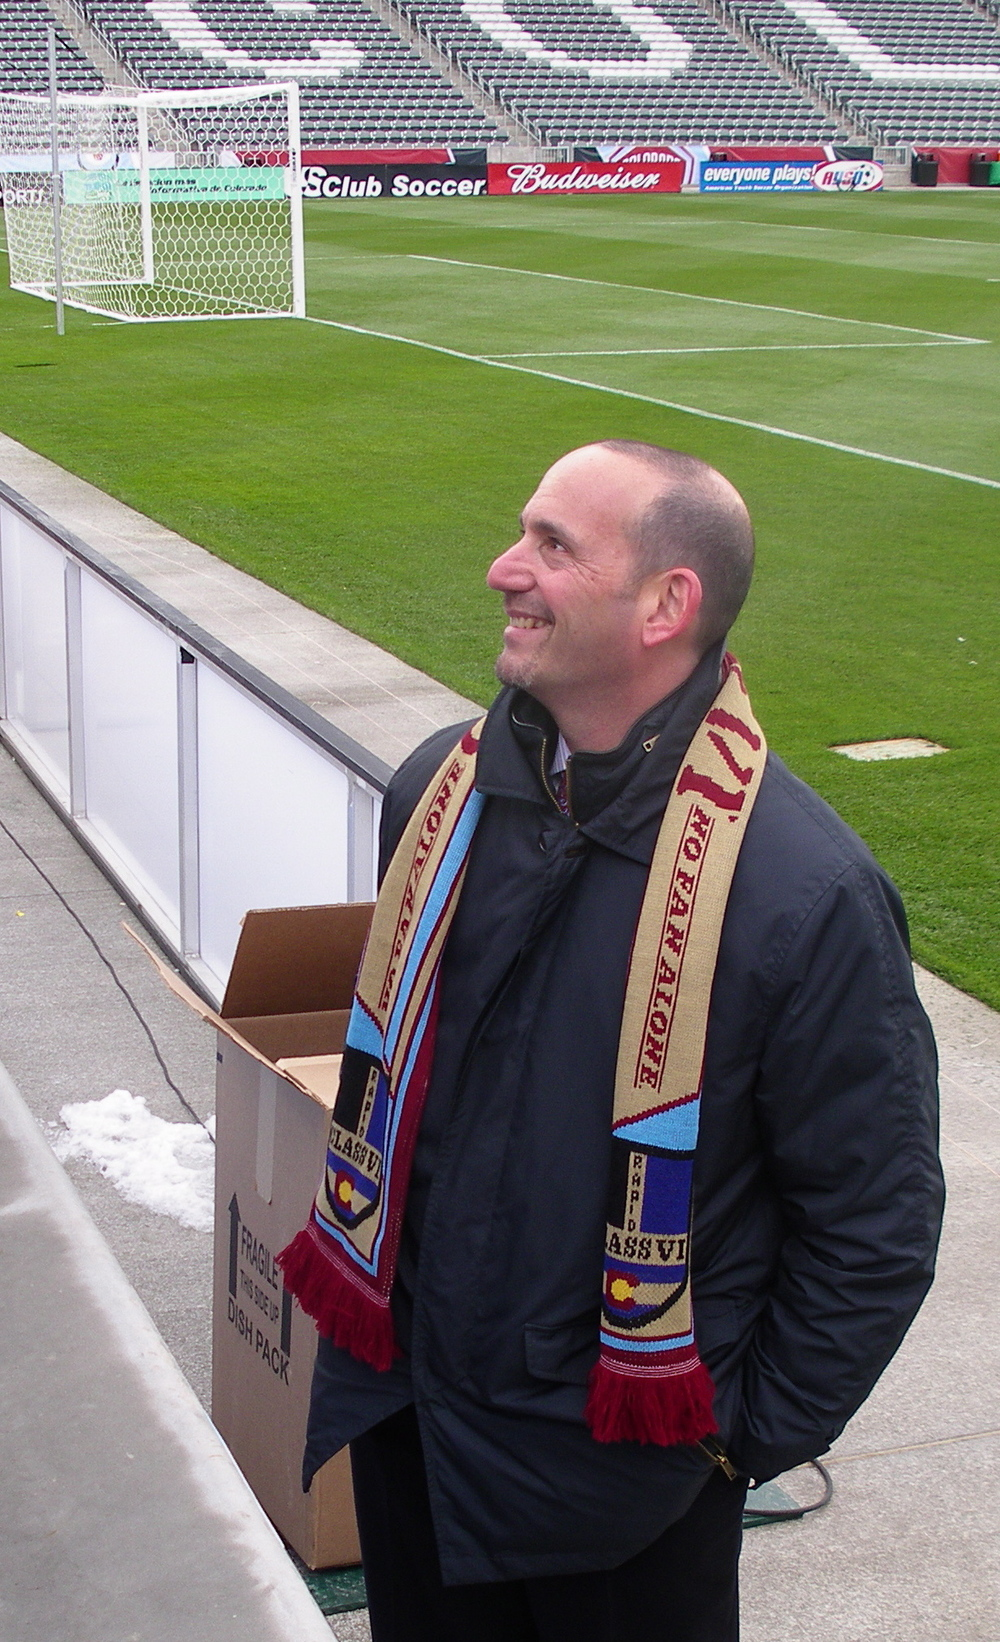 MLS Commish Don Garber, smiling at the prospect of MLS showing the world that video replay can indeed work.